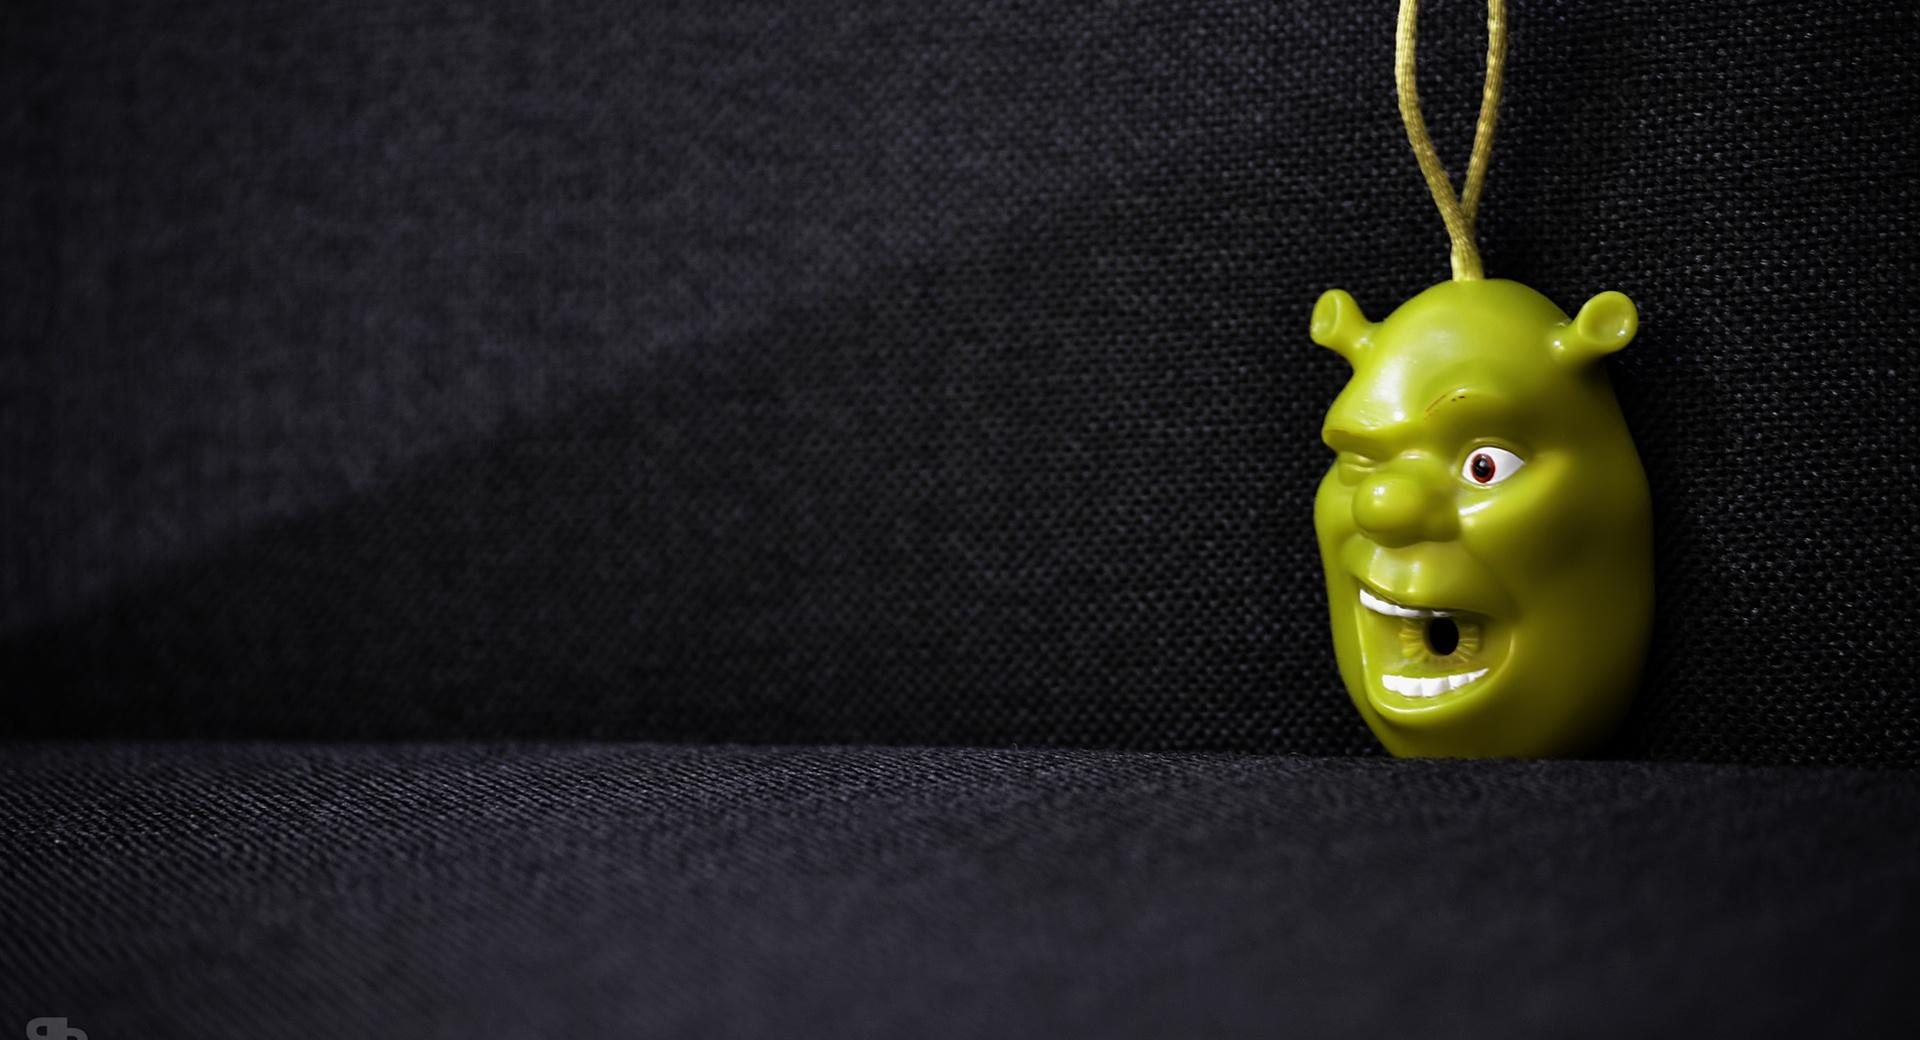 Shrek Key Holder wallpapers HD quality